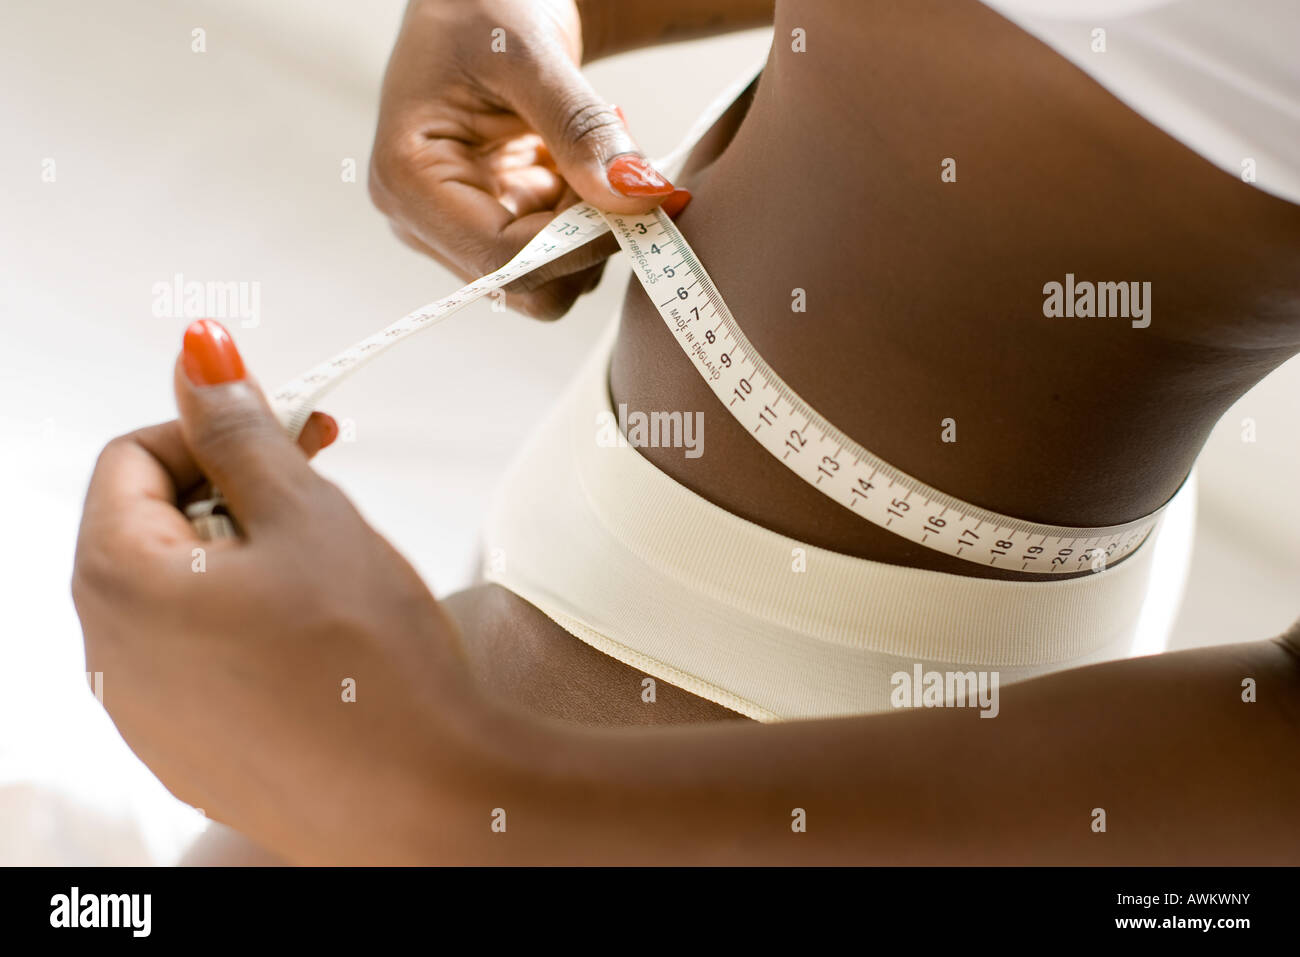 Ethnic woman measuring her waist Photo Stock